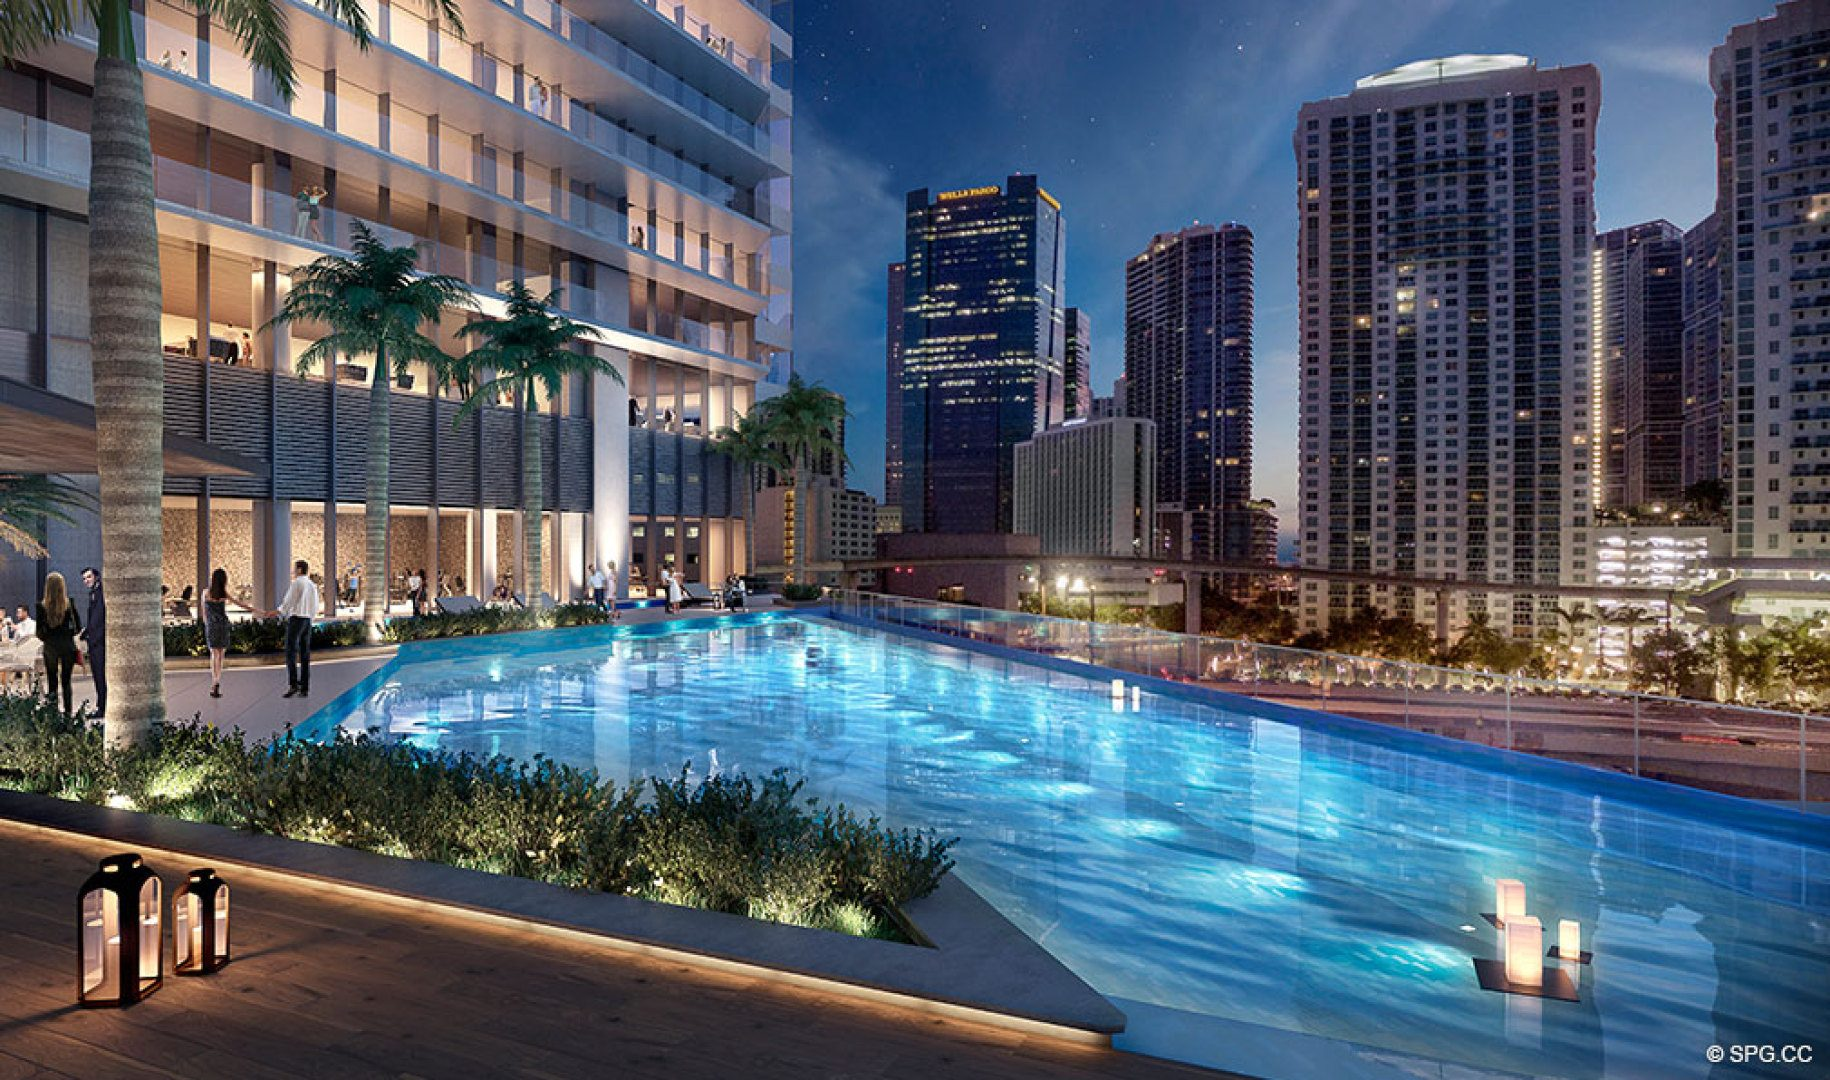 Spend Evenings Poolside at One River Point, Luxury Waterfront Condos in Miami, Florida 33130